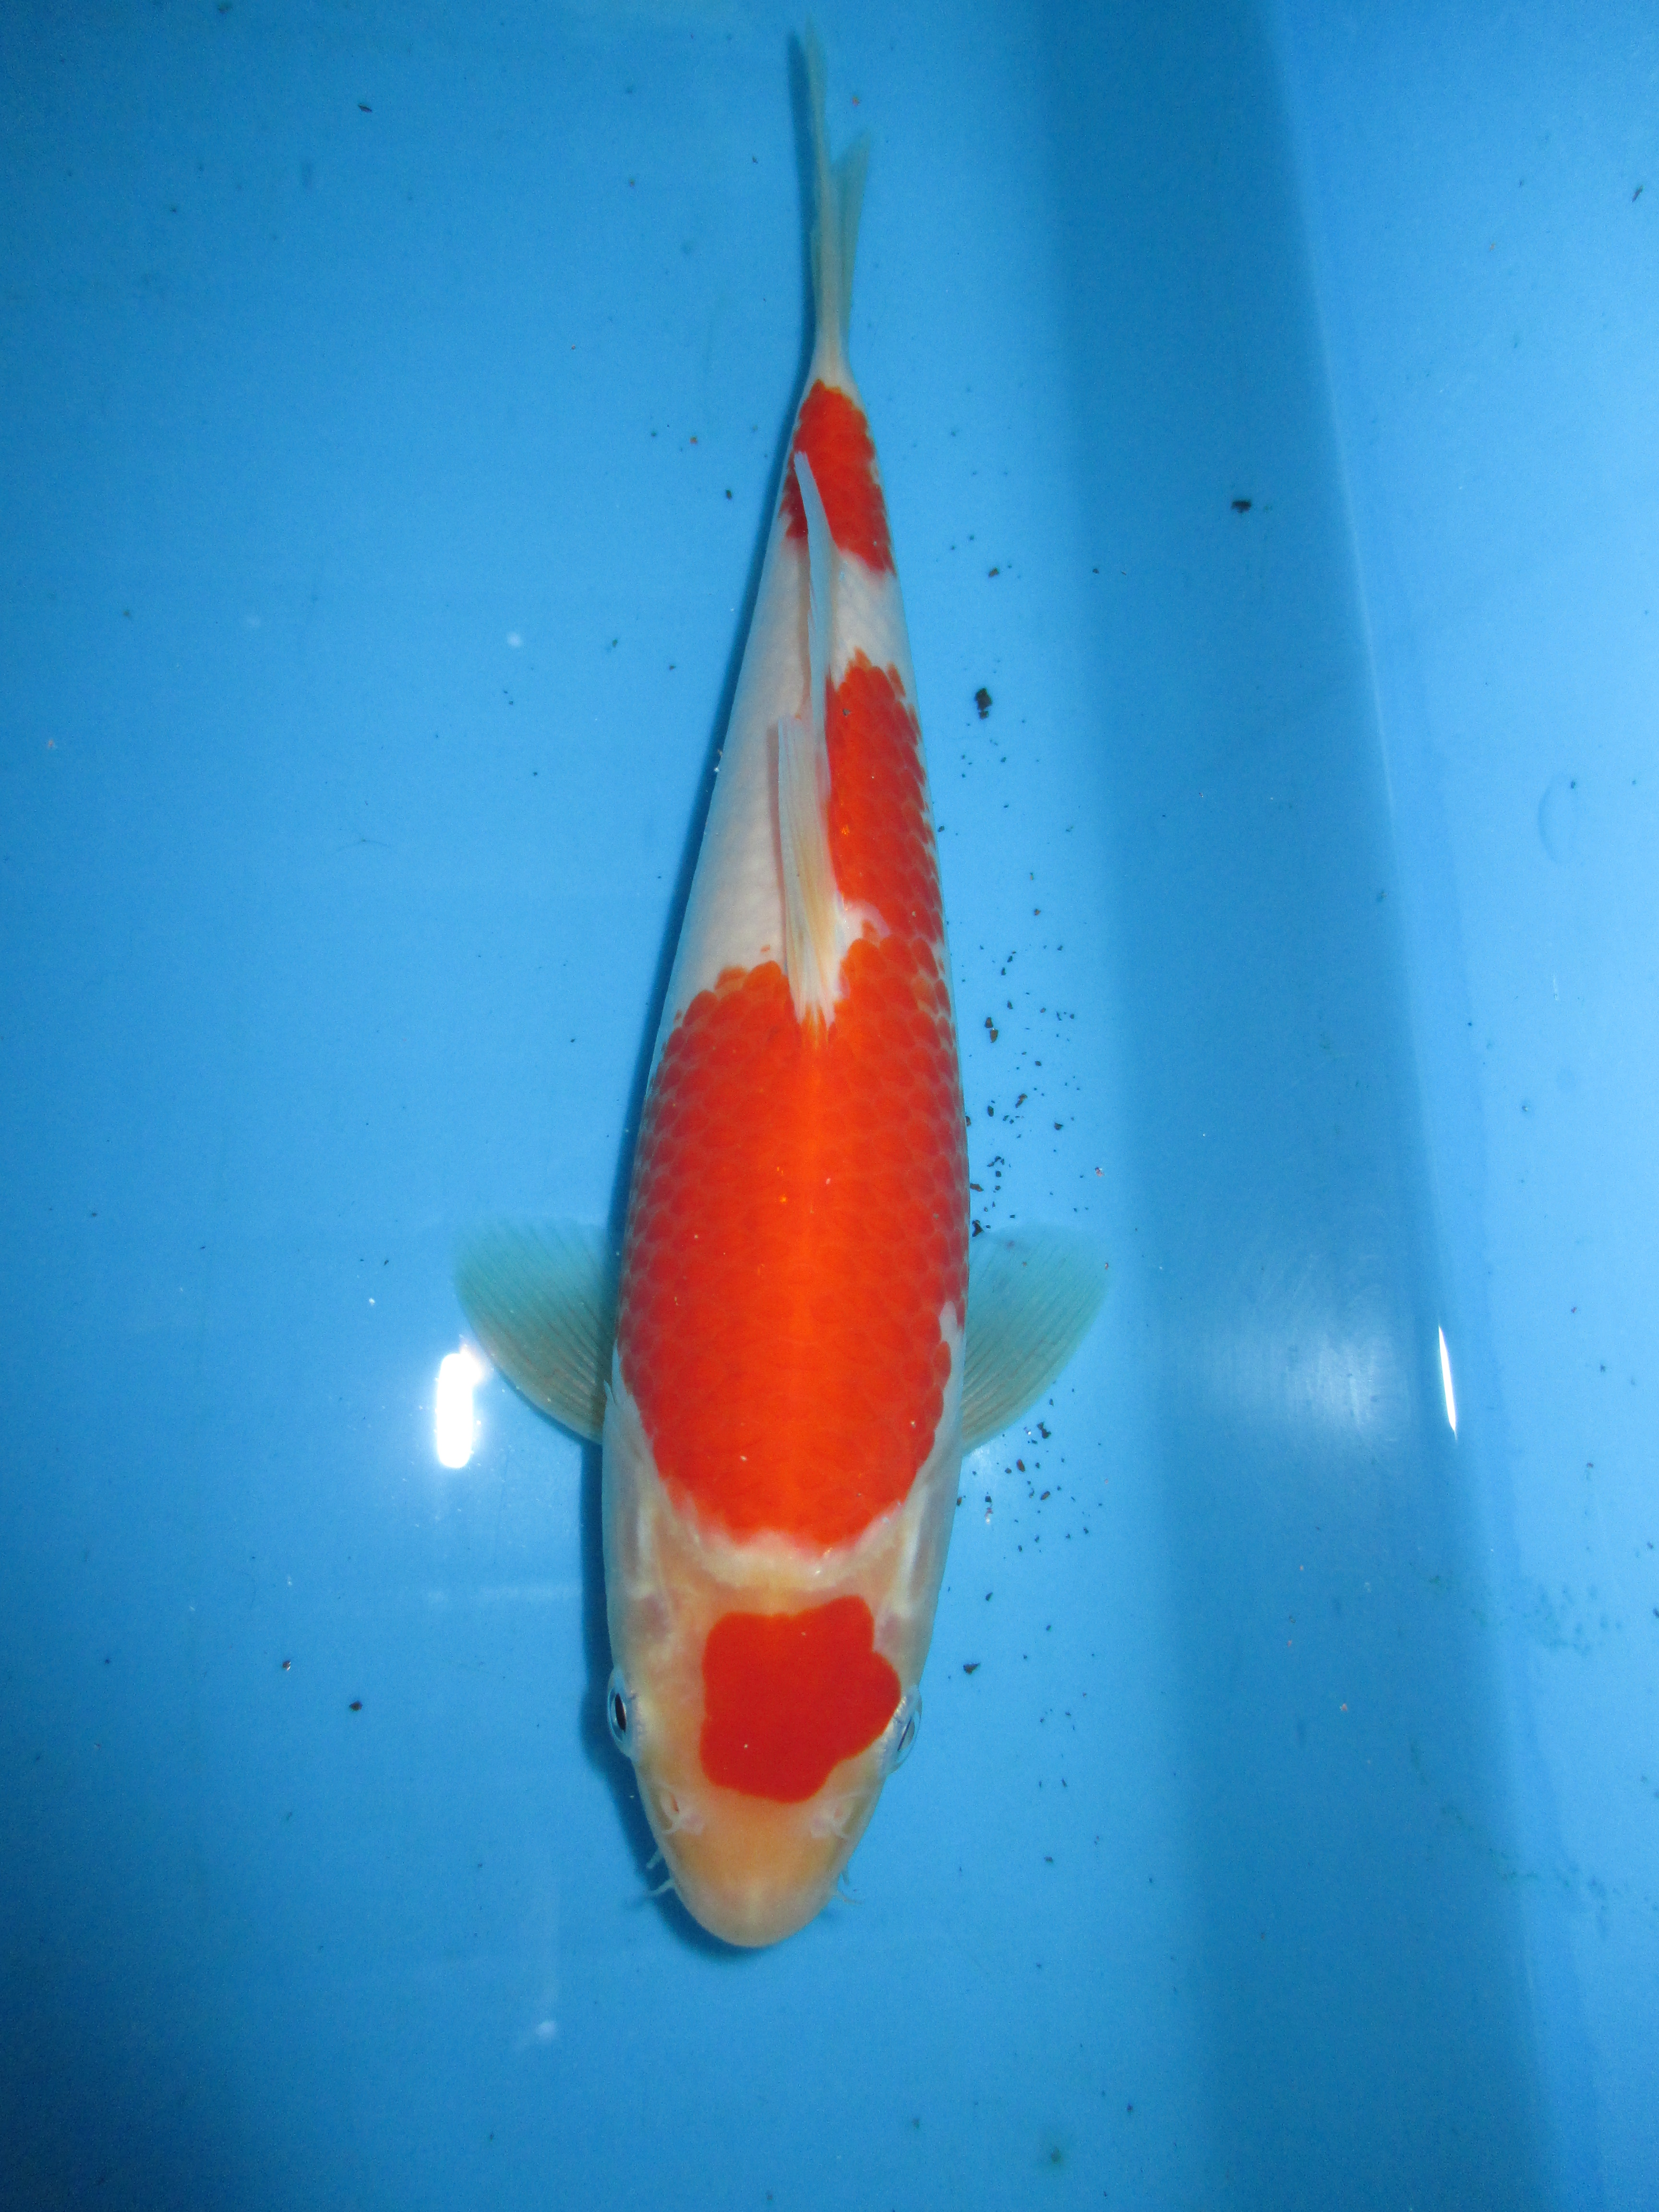 Marugen koi farm kohaku koi for sale in singapore 29 for Kohaku koi for sale